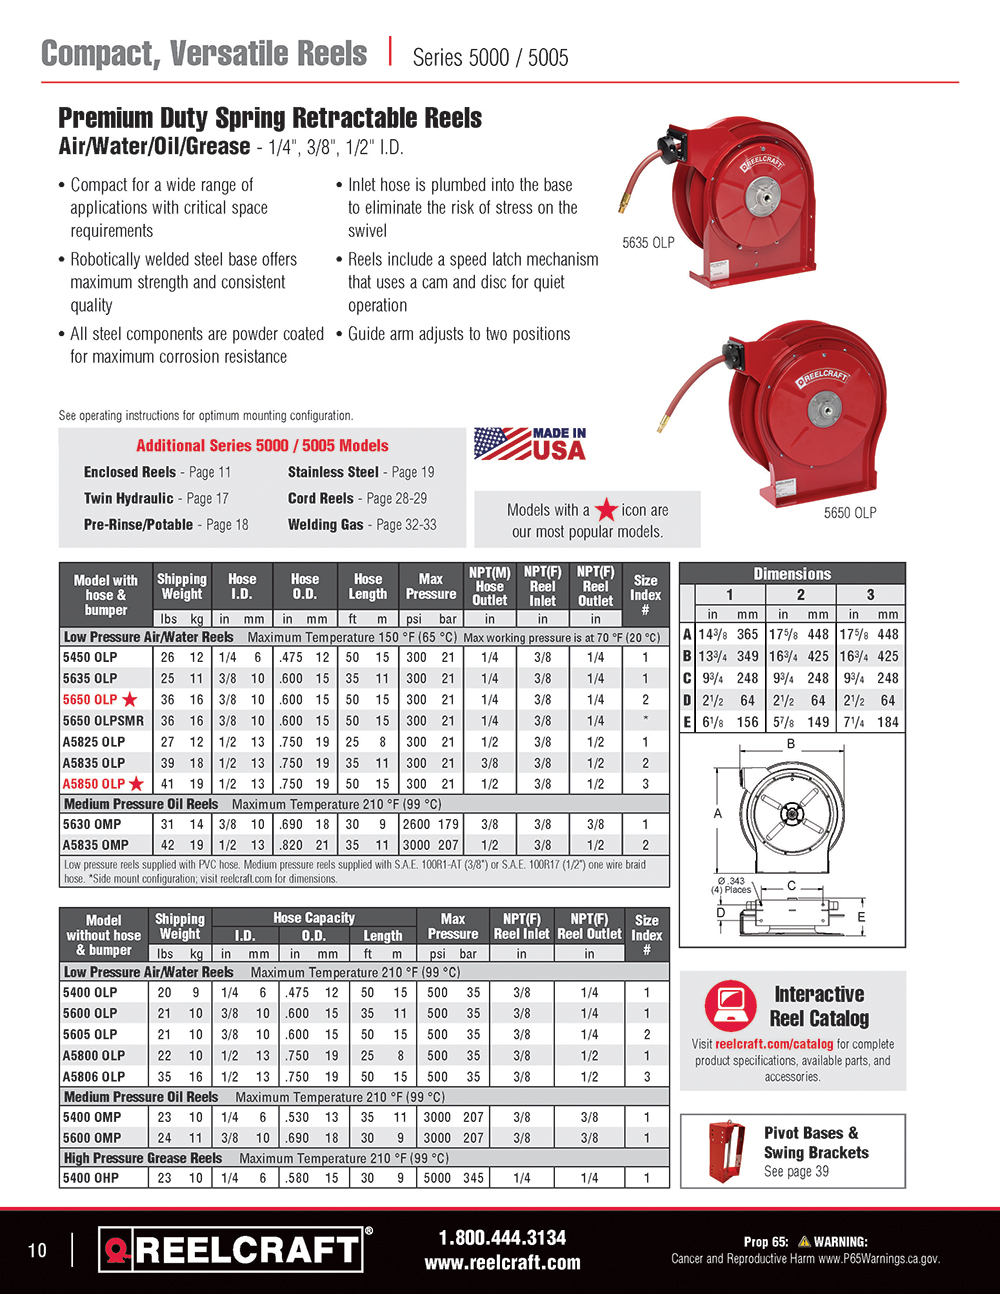 Reelcraft Catalog Page 10 - Series 4000/5000 Hose Reels